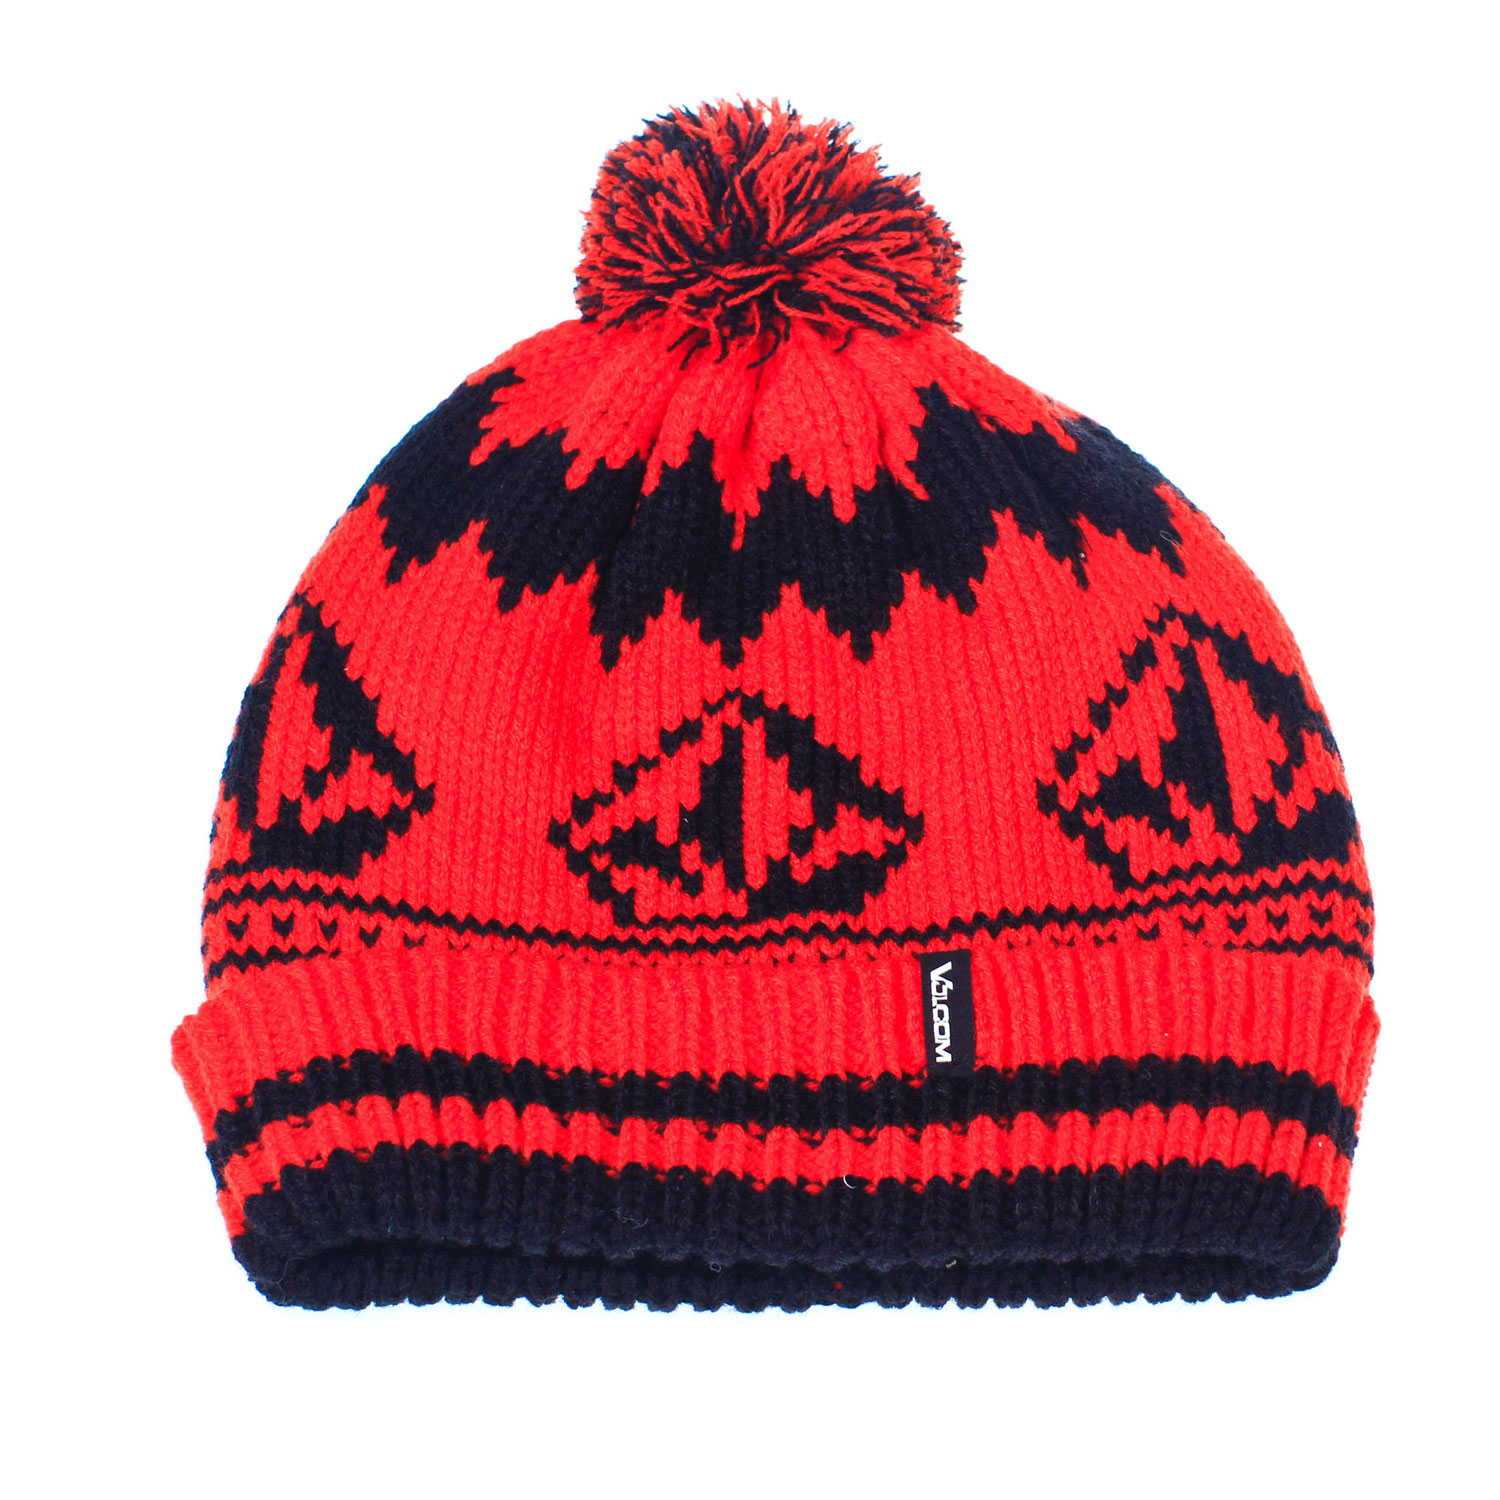 Surf Key Features of the Volcom Stone Jacquard Beanie: One Size Fits Most Machine Knit Acrylic Roll Over Pom Pom Woven Clamp Label Stone Jacqurd Roll Over Fit - $26.00